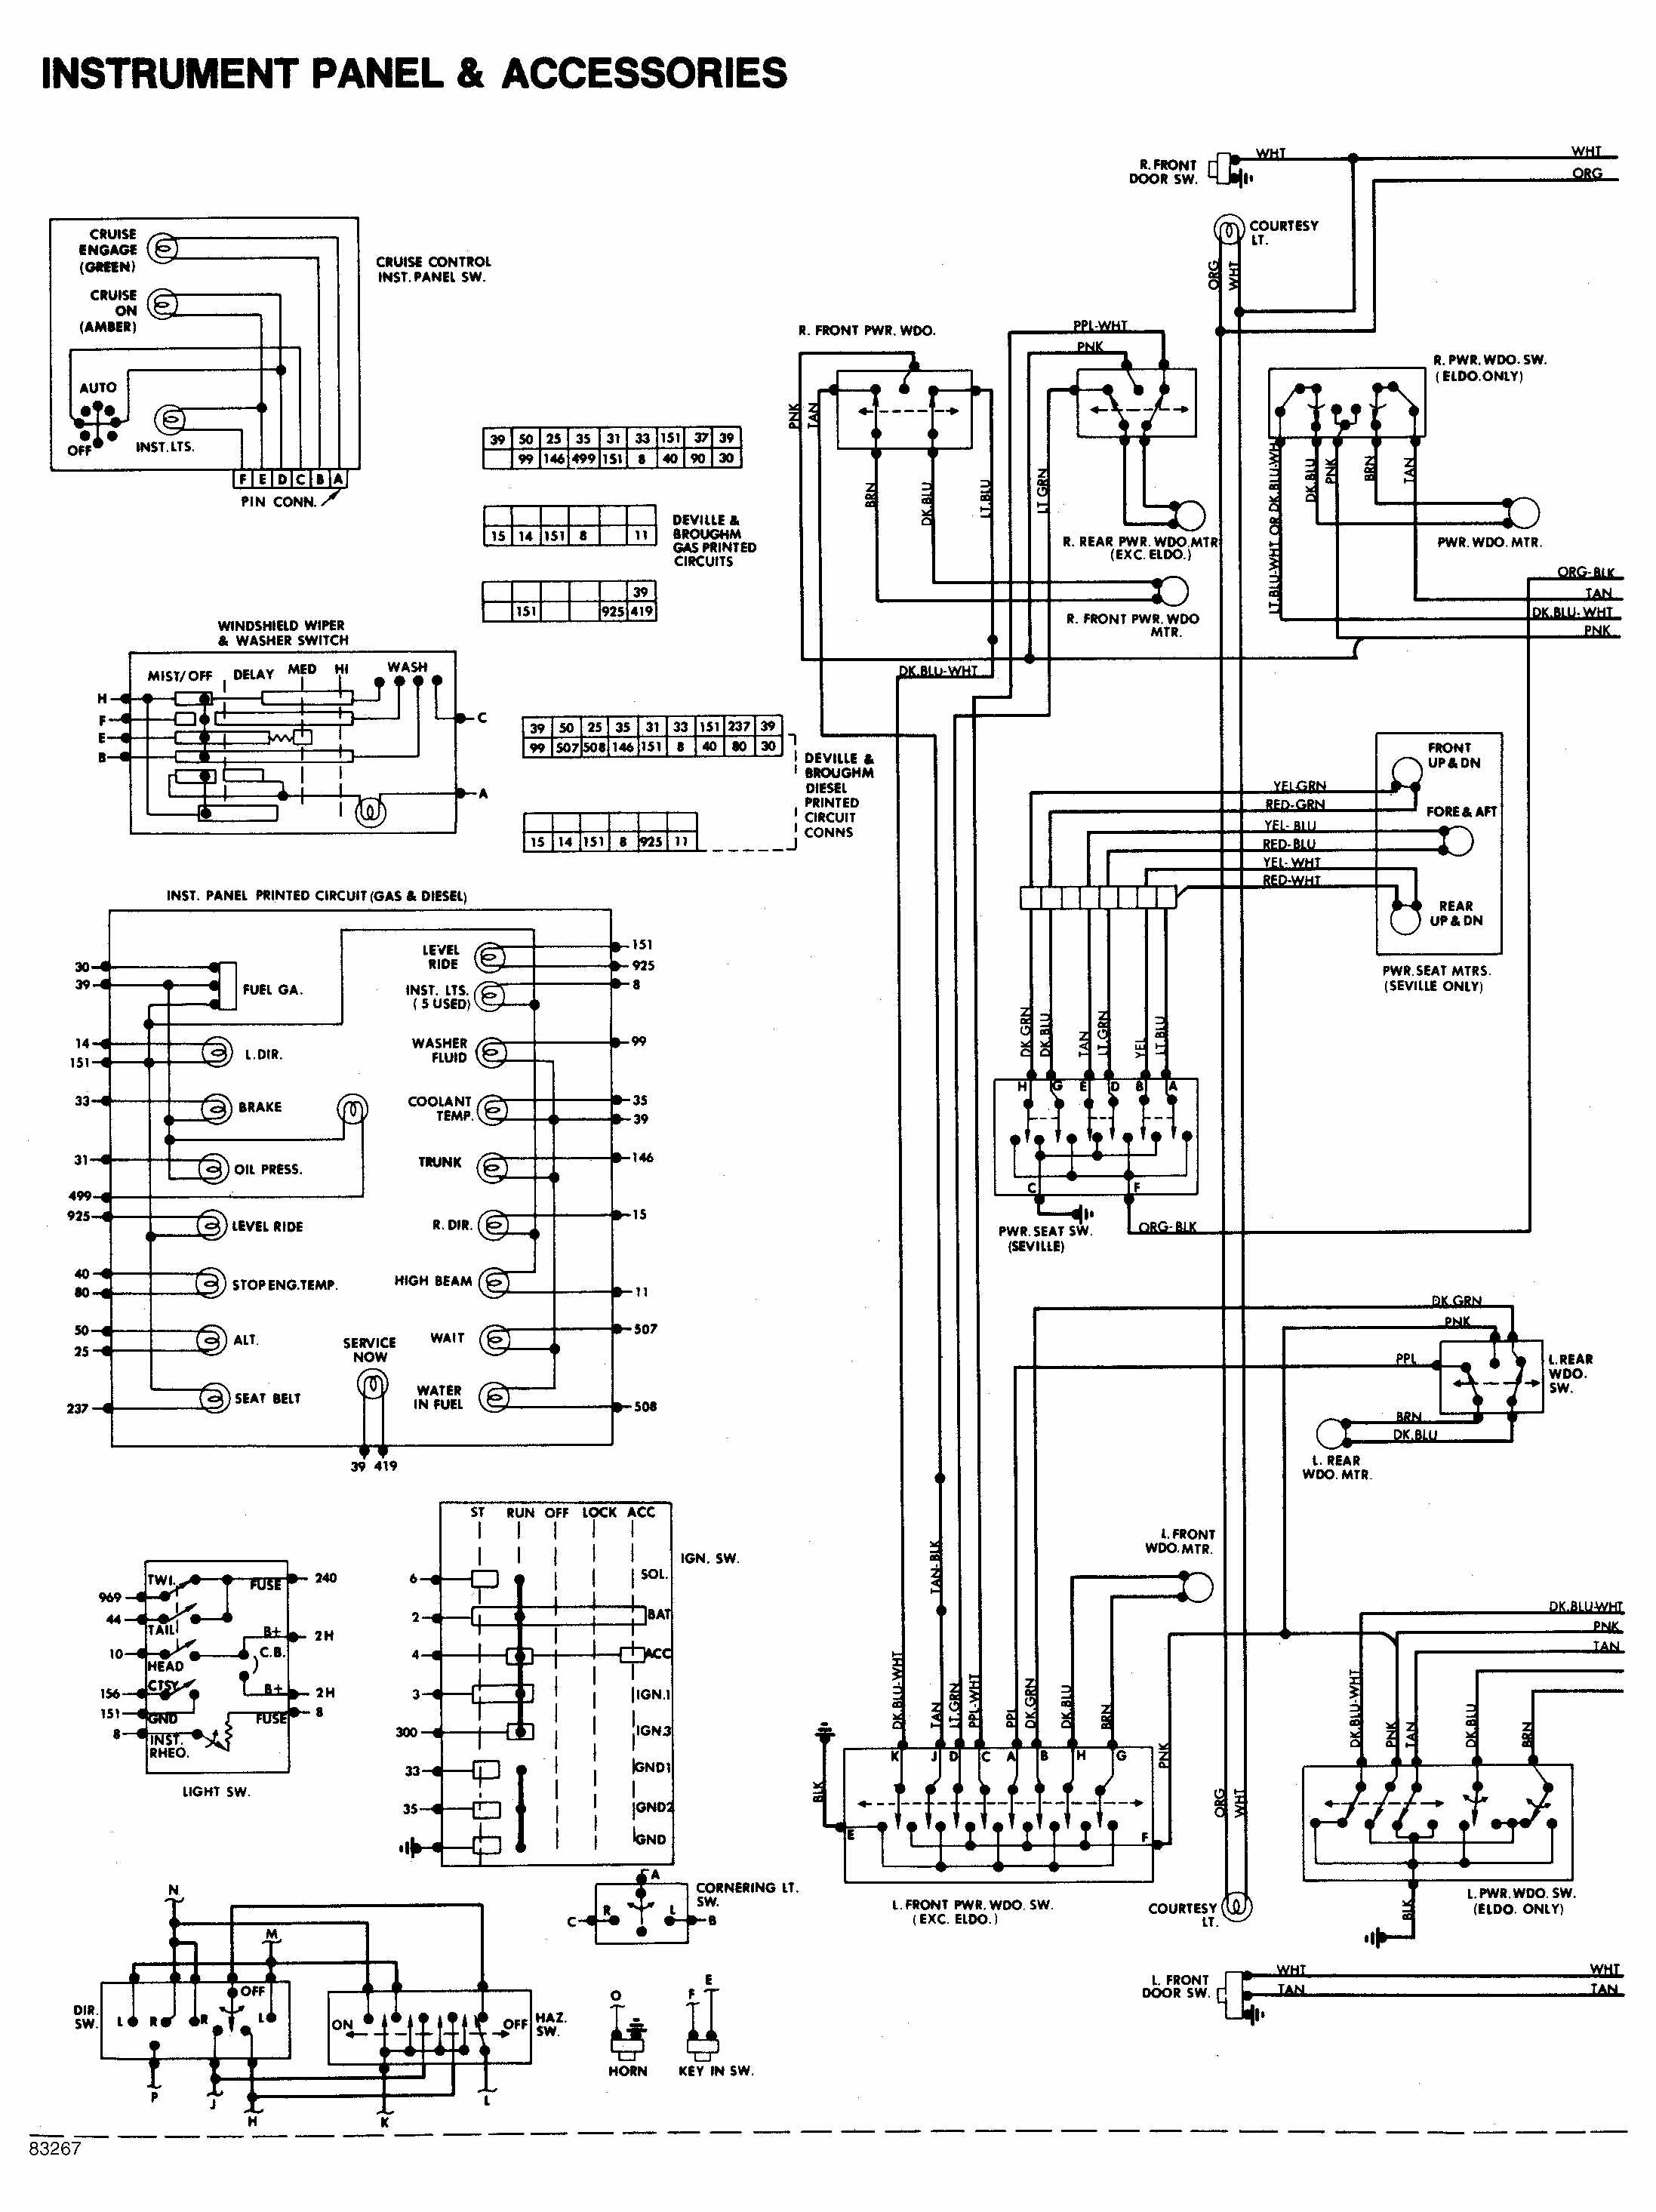 instrument panel and accessories wiring diagram of 1984 cadillac deville chevy diagrams 1984 corvette fuel pump wiring diagram at n-0.co